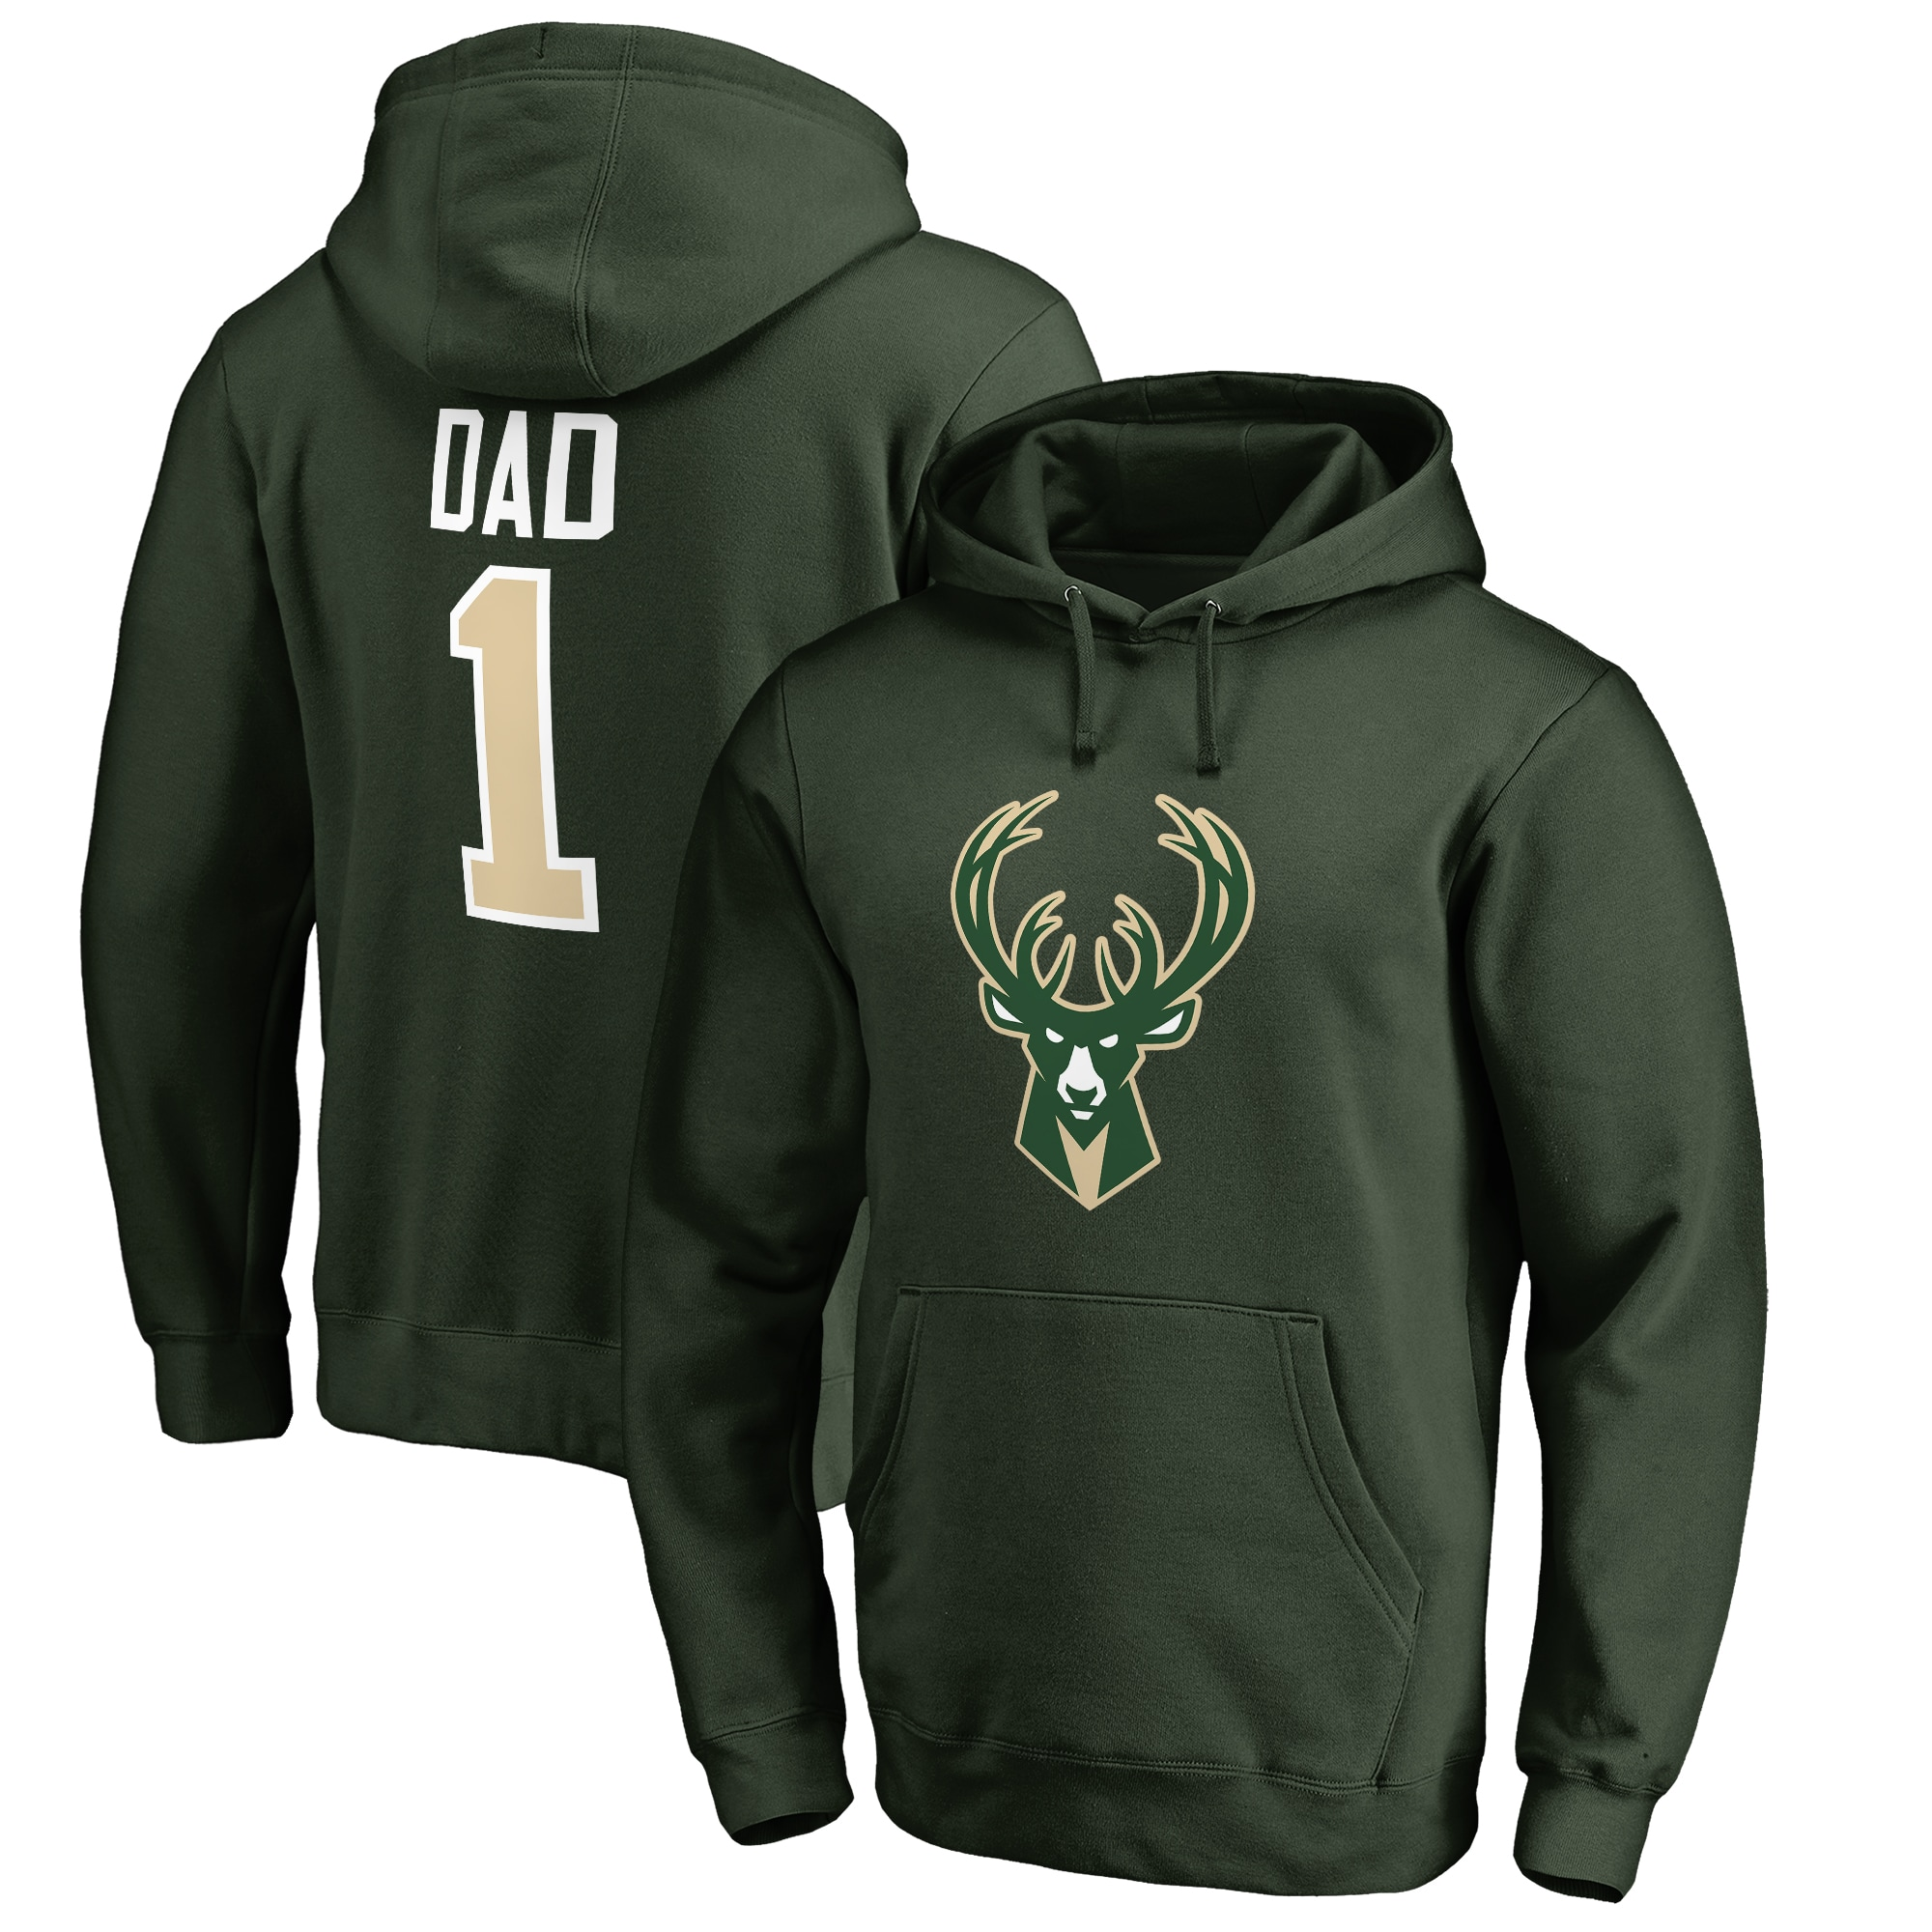 Milwaukee Bucks #1 Dad Pullover Hoodie - Green